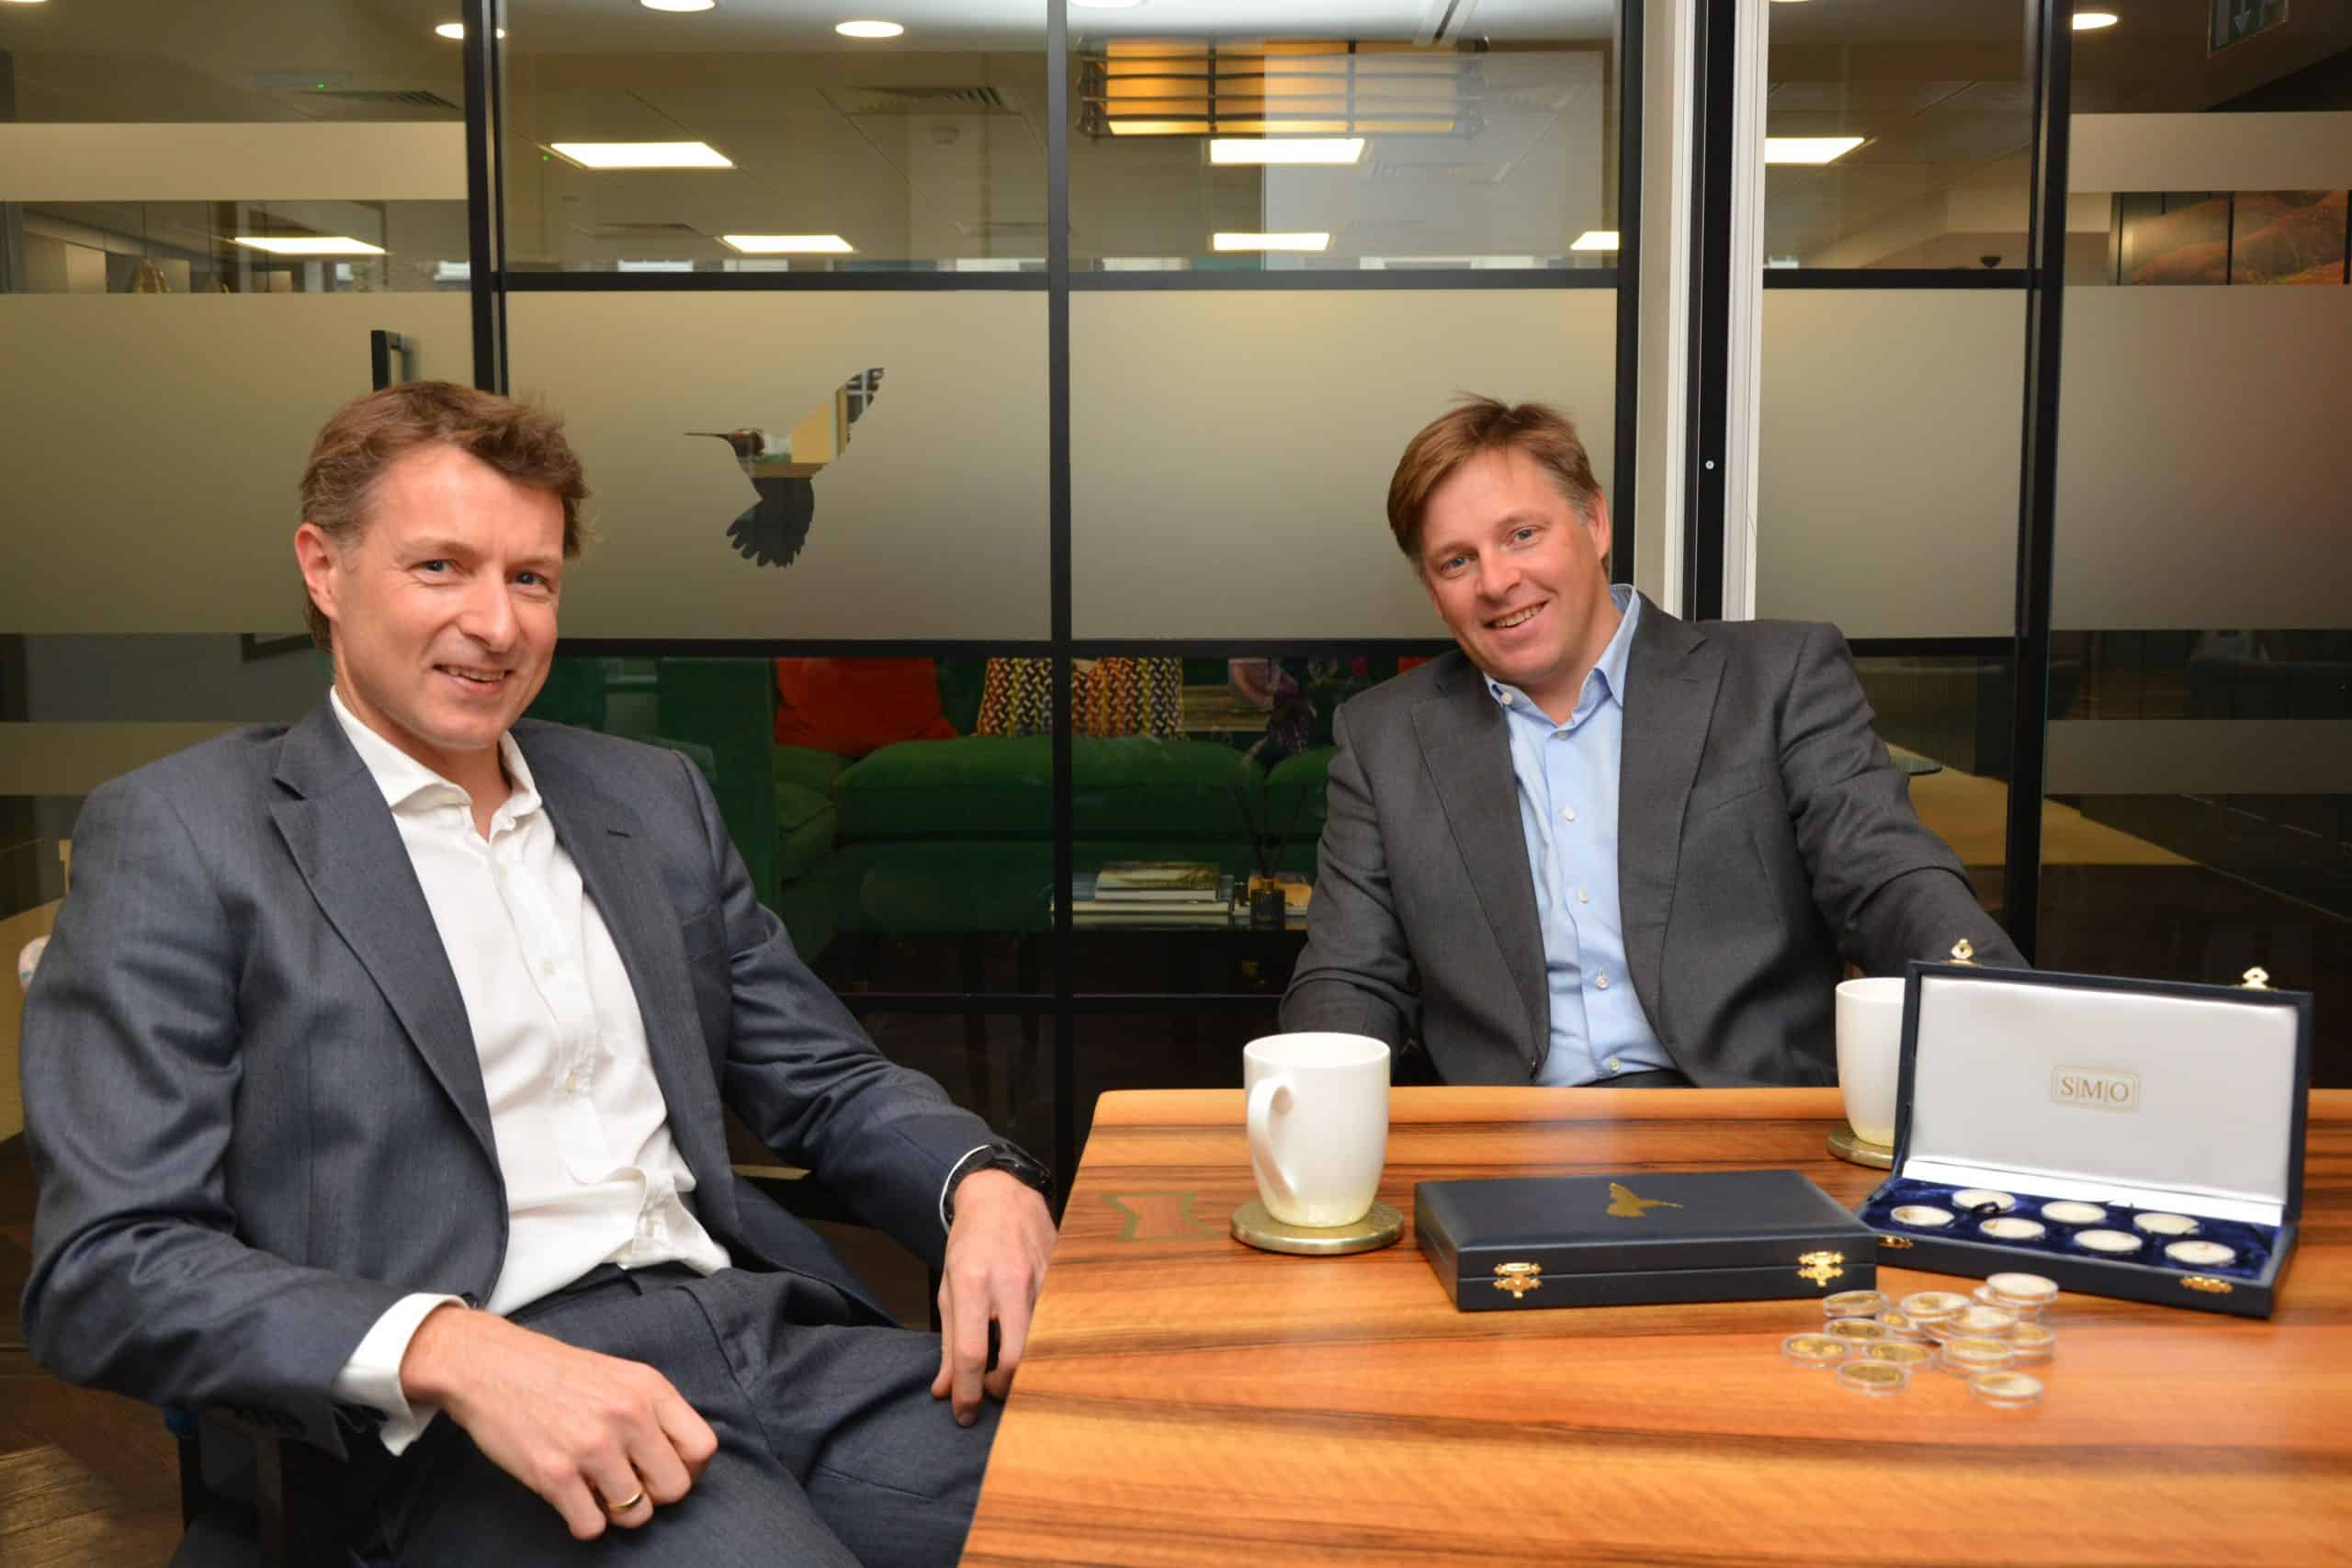 Betts Group managing director, Charlie Betts with brother Dan Betts